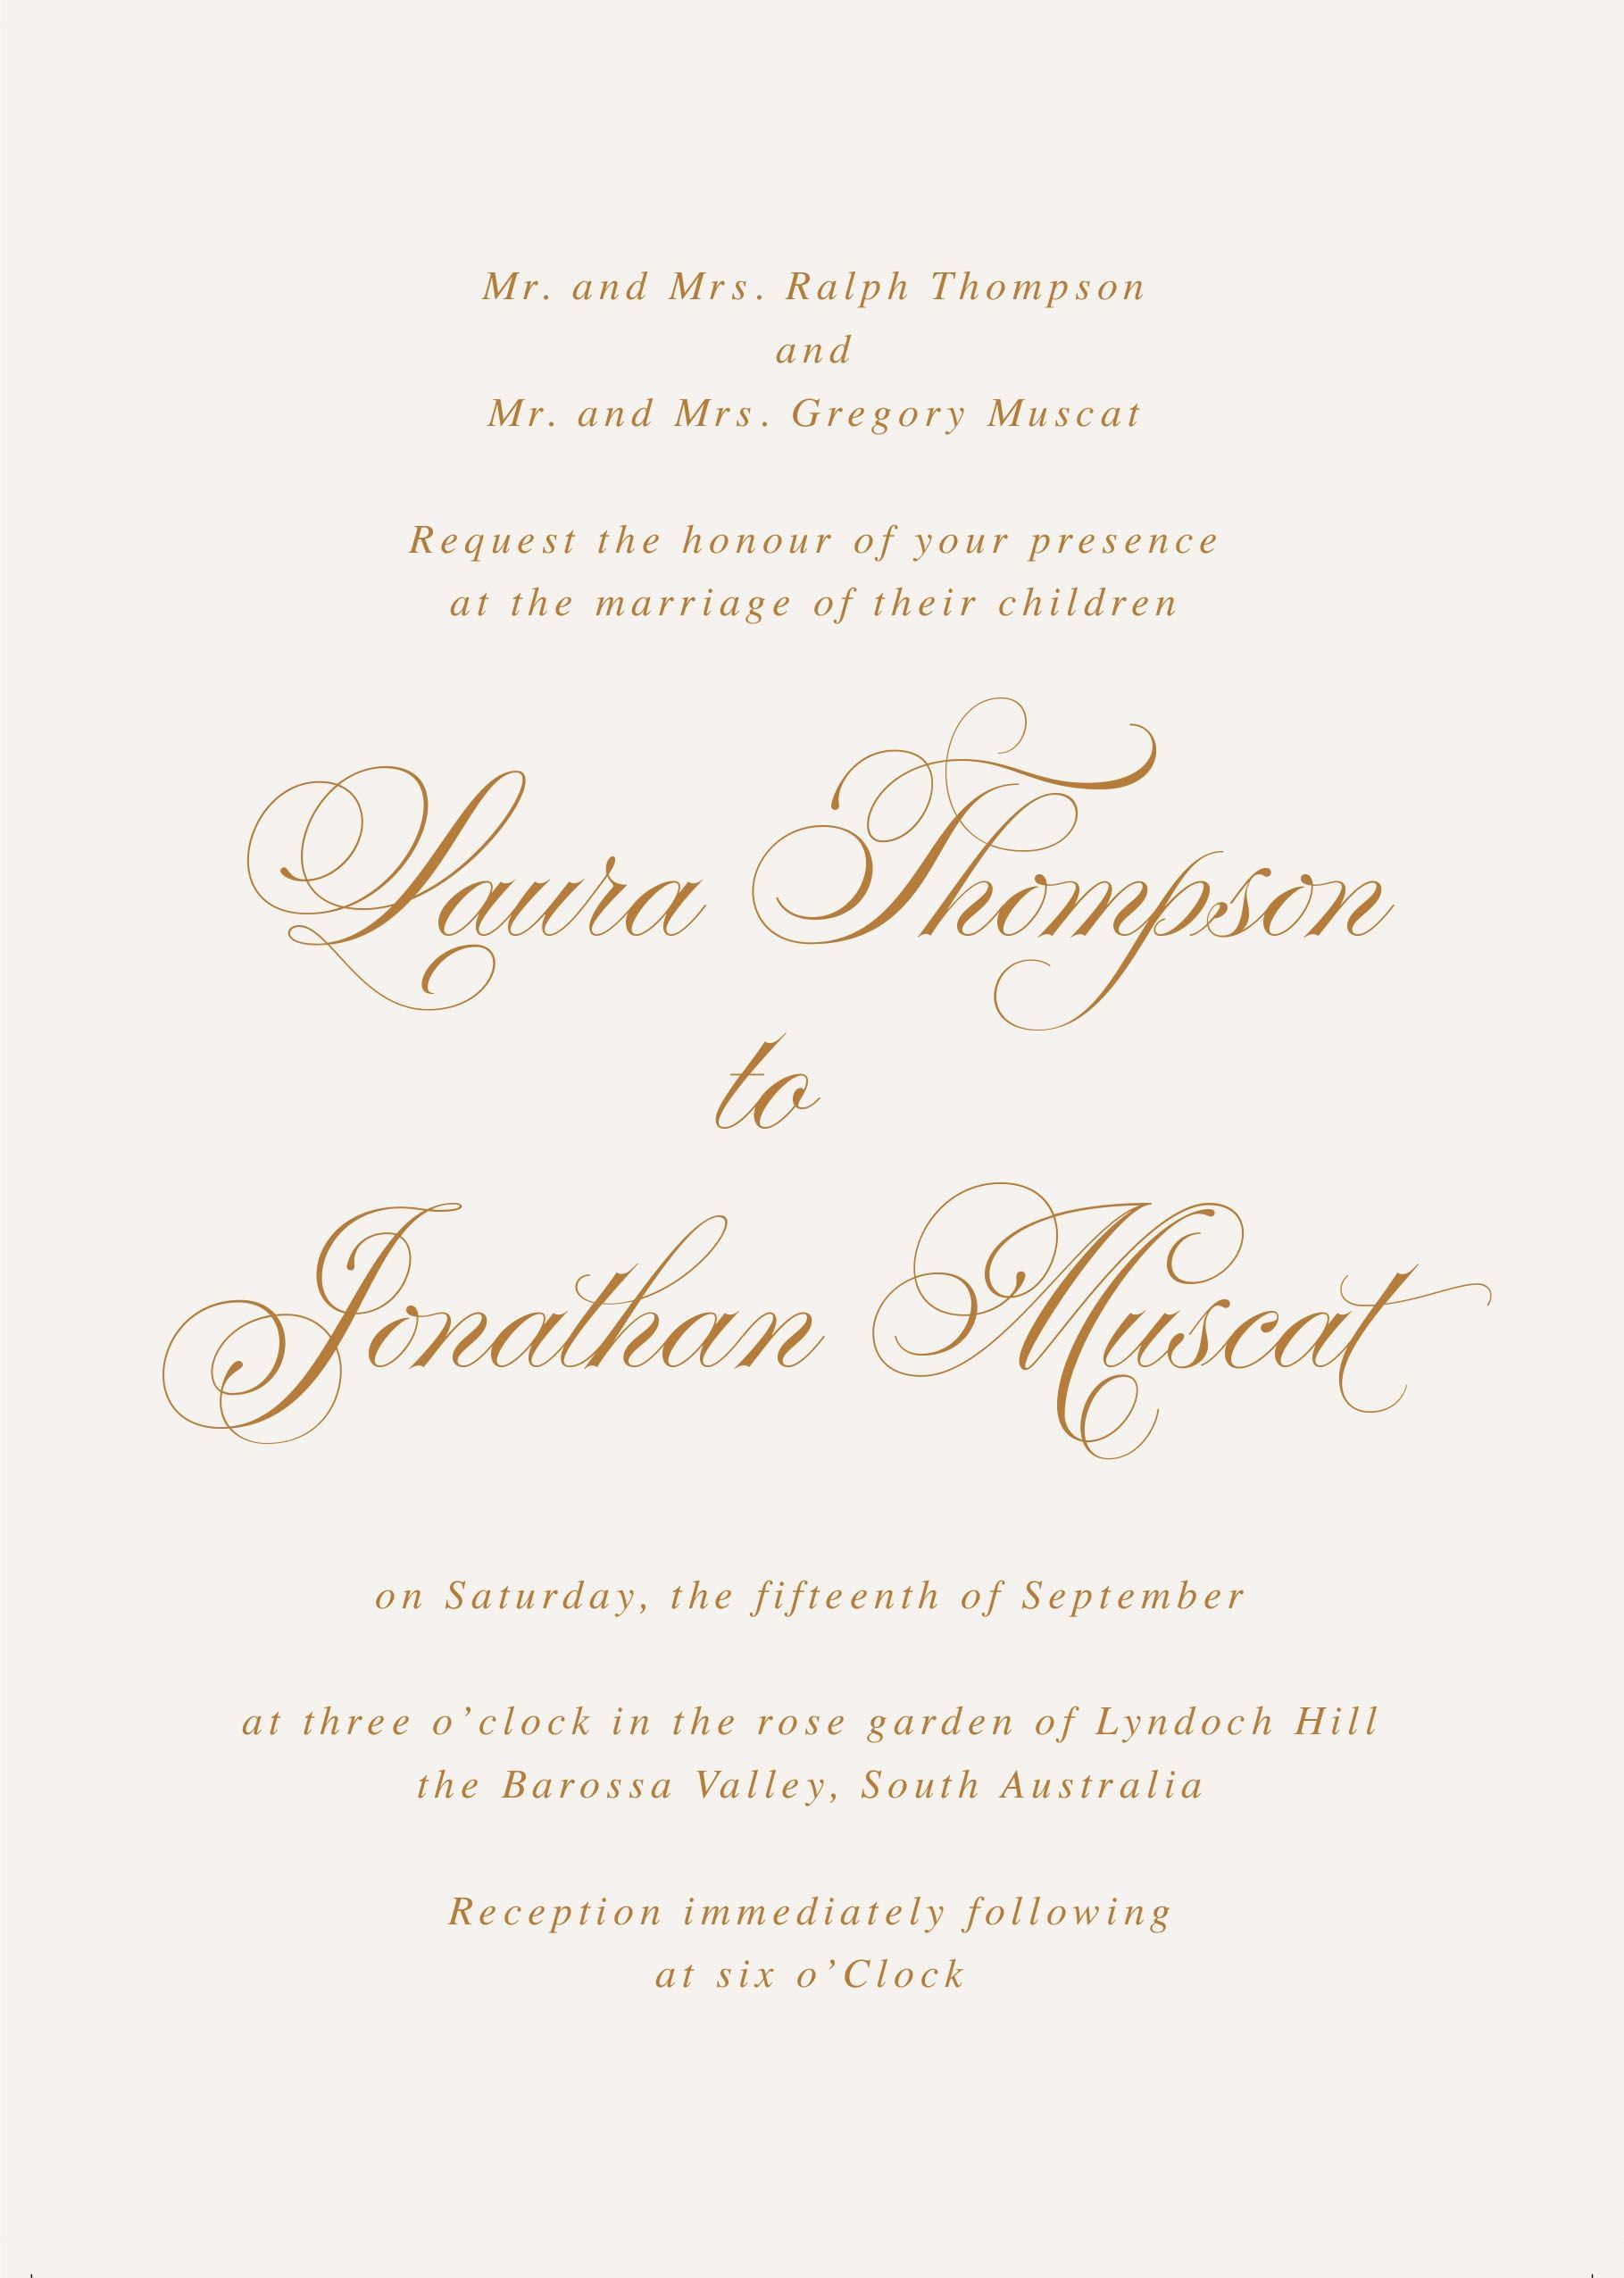 Wedding Invitation Wording Samples Reception Immediate In 2020 Traditional Wedding Invitation Wording Traditional Wedding Invitations Wedding Invitation Wording Formal